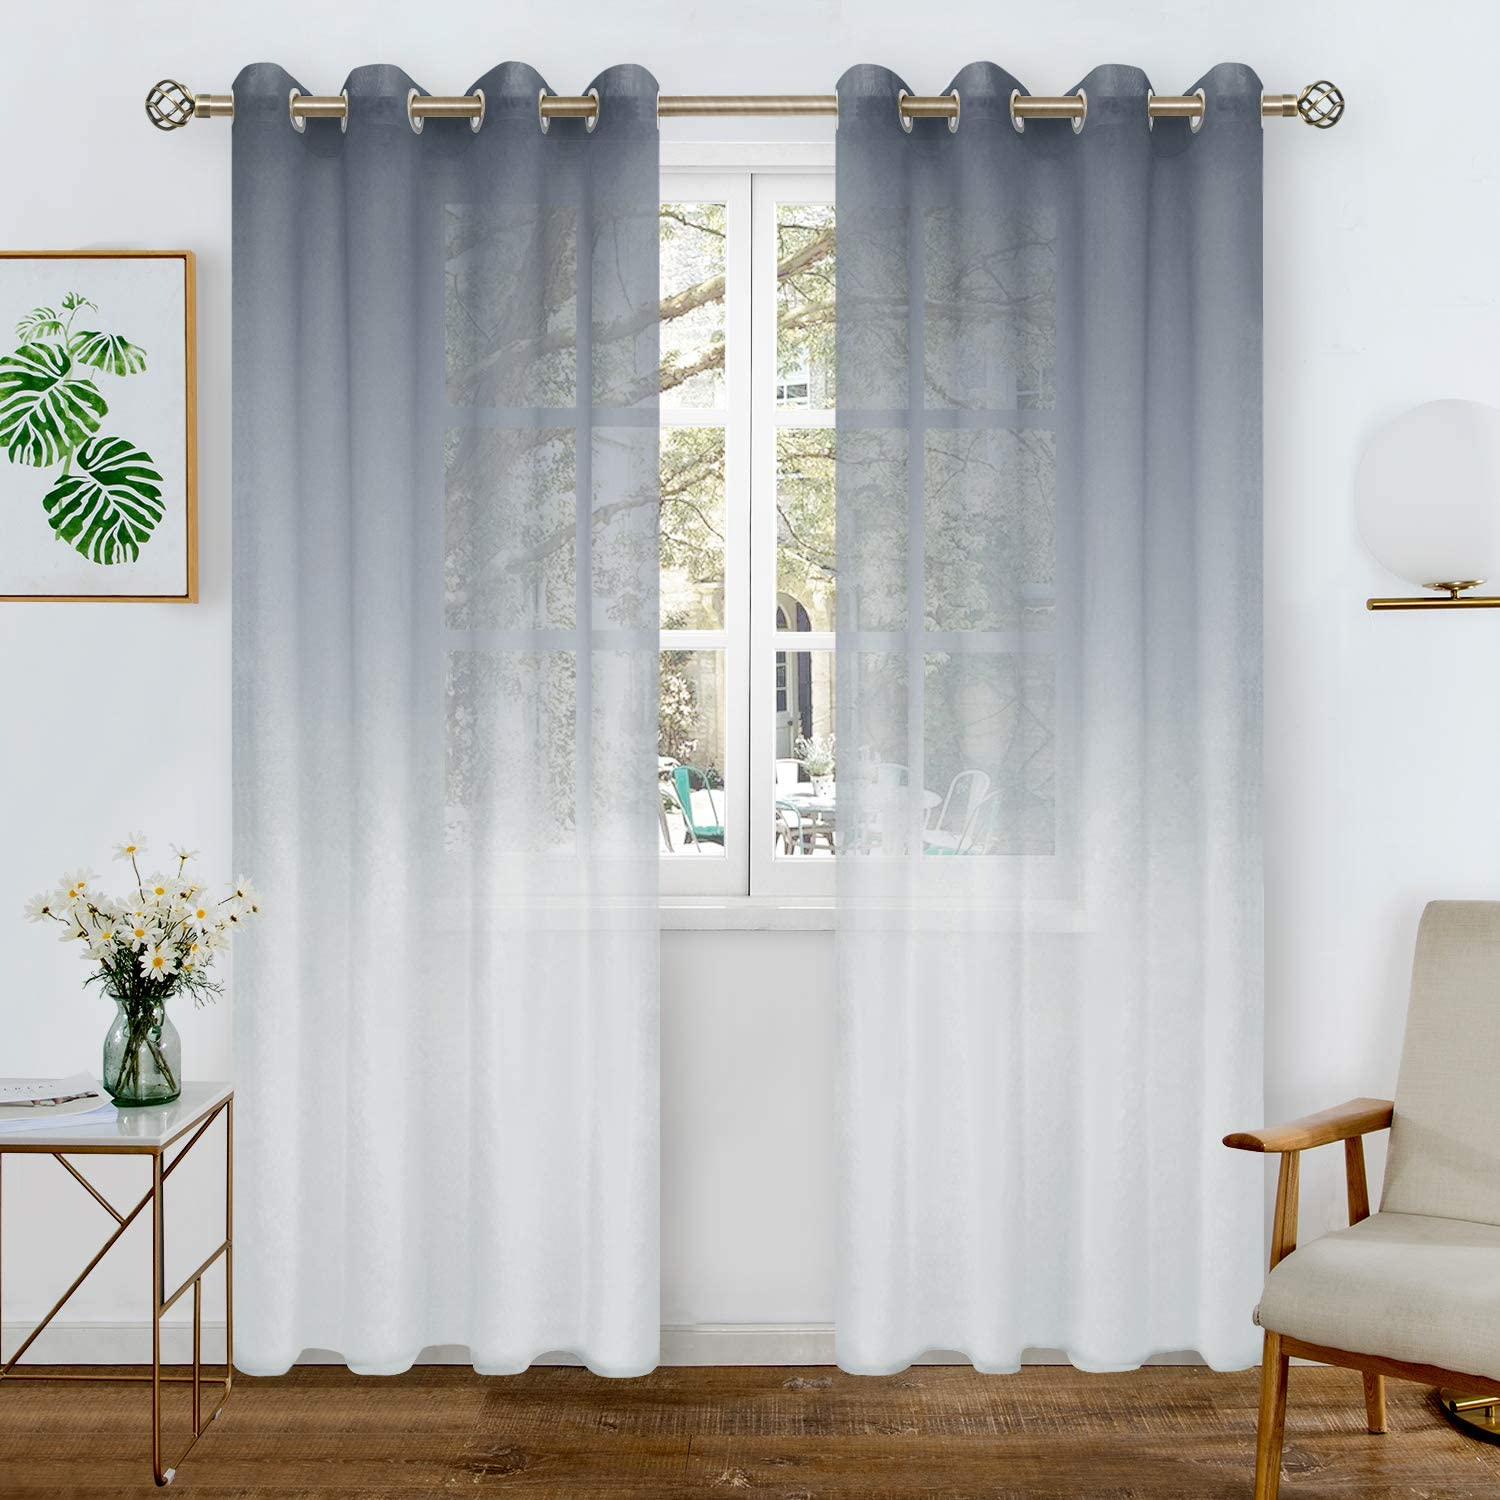 BGment Faux Linen Ombre Sheer Curtains for Living Room, Grommet Semi Voile Light Filtering and Privacy Curtains for Bedroom, Set of 2 Panels (Each 52 x 72 Inch, Bluish Grey)